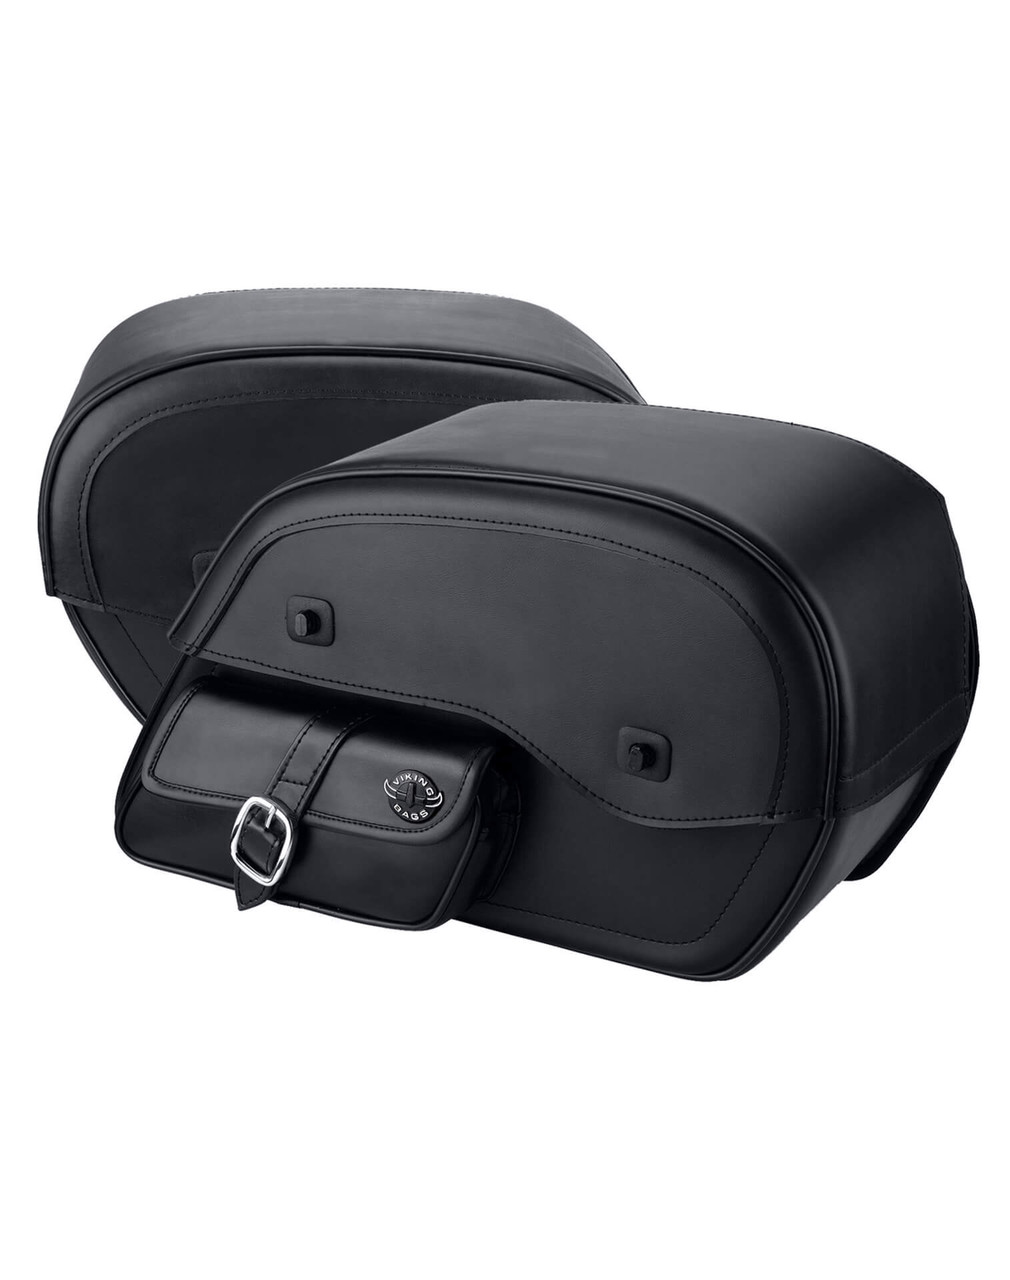 Victory High Ball SS Side Pocket Motorcycle Saddlebags both bags view